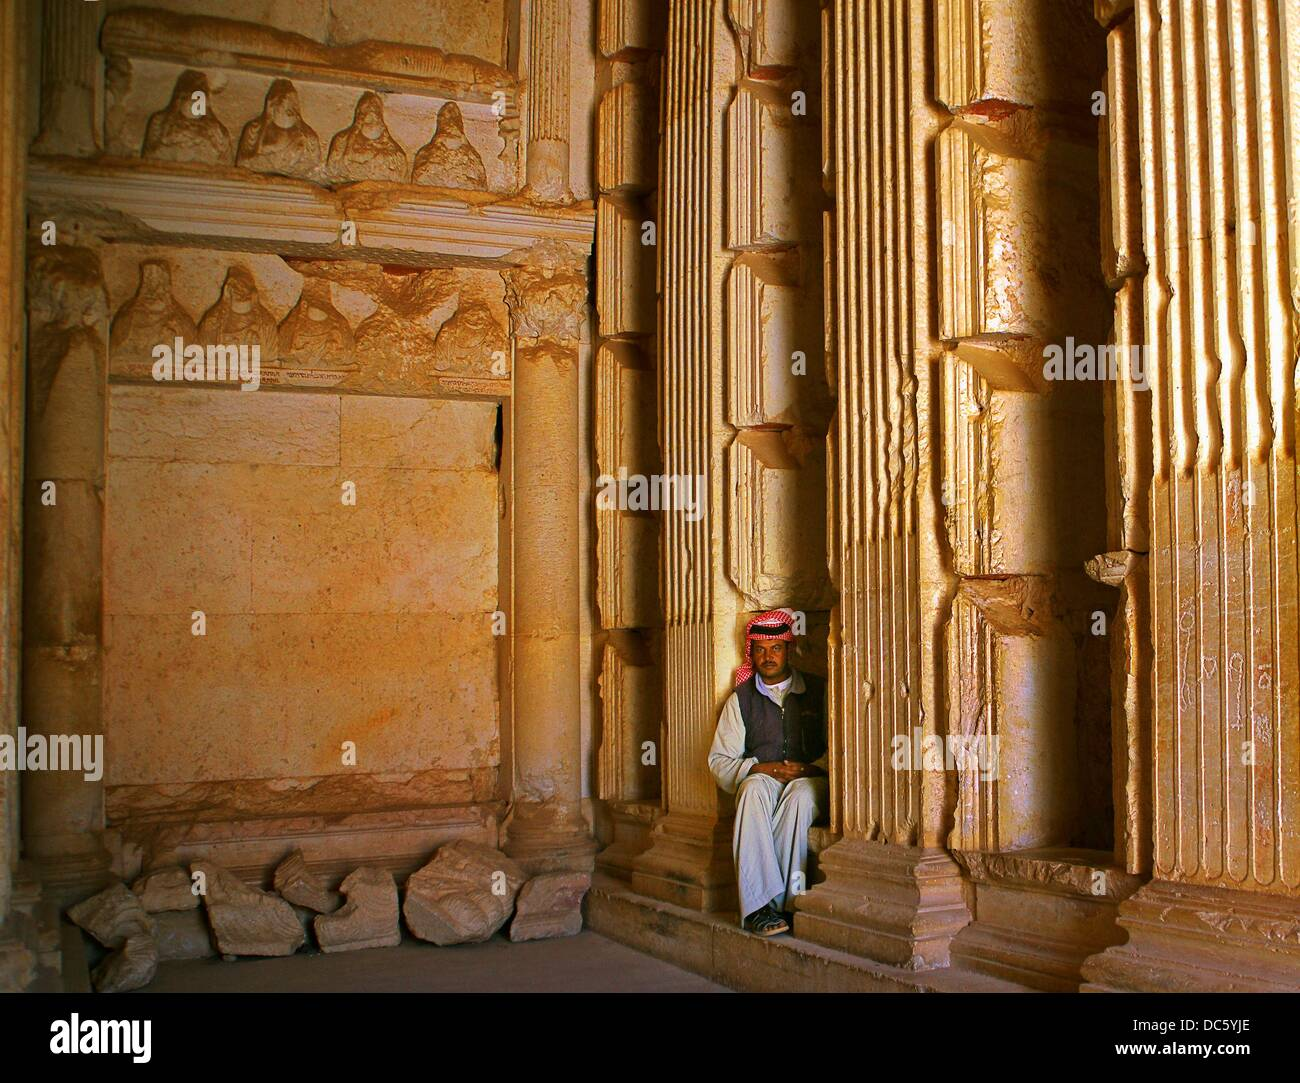 Inside the Elahbel tomb (105 BC), Palmyra, Syria - Stock Image